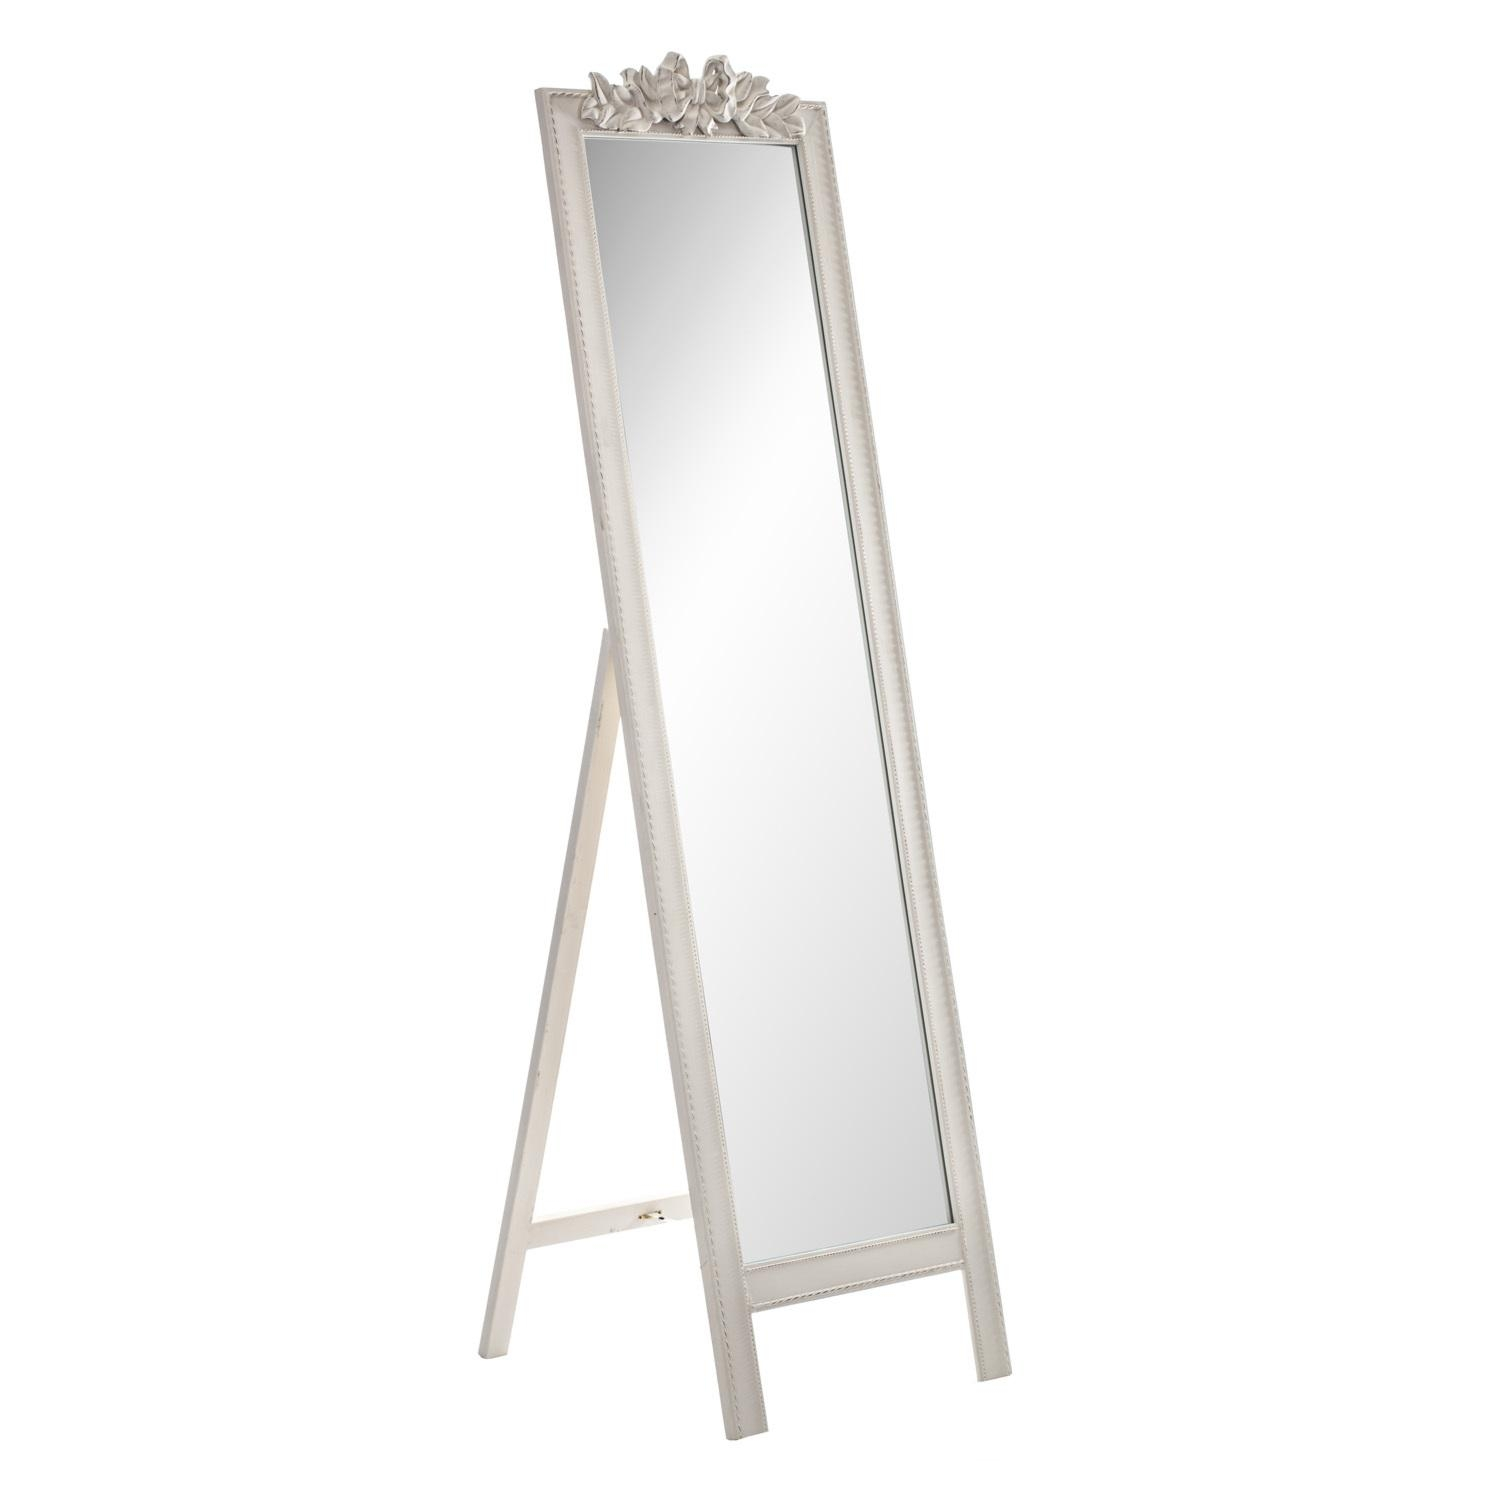 Homeware: Oval Full Length Standing Mirror | Large Floor Mirrors With Free Stand Mirror (Image 12 of 20)